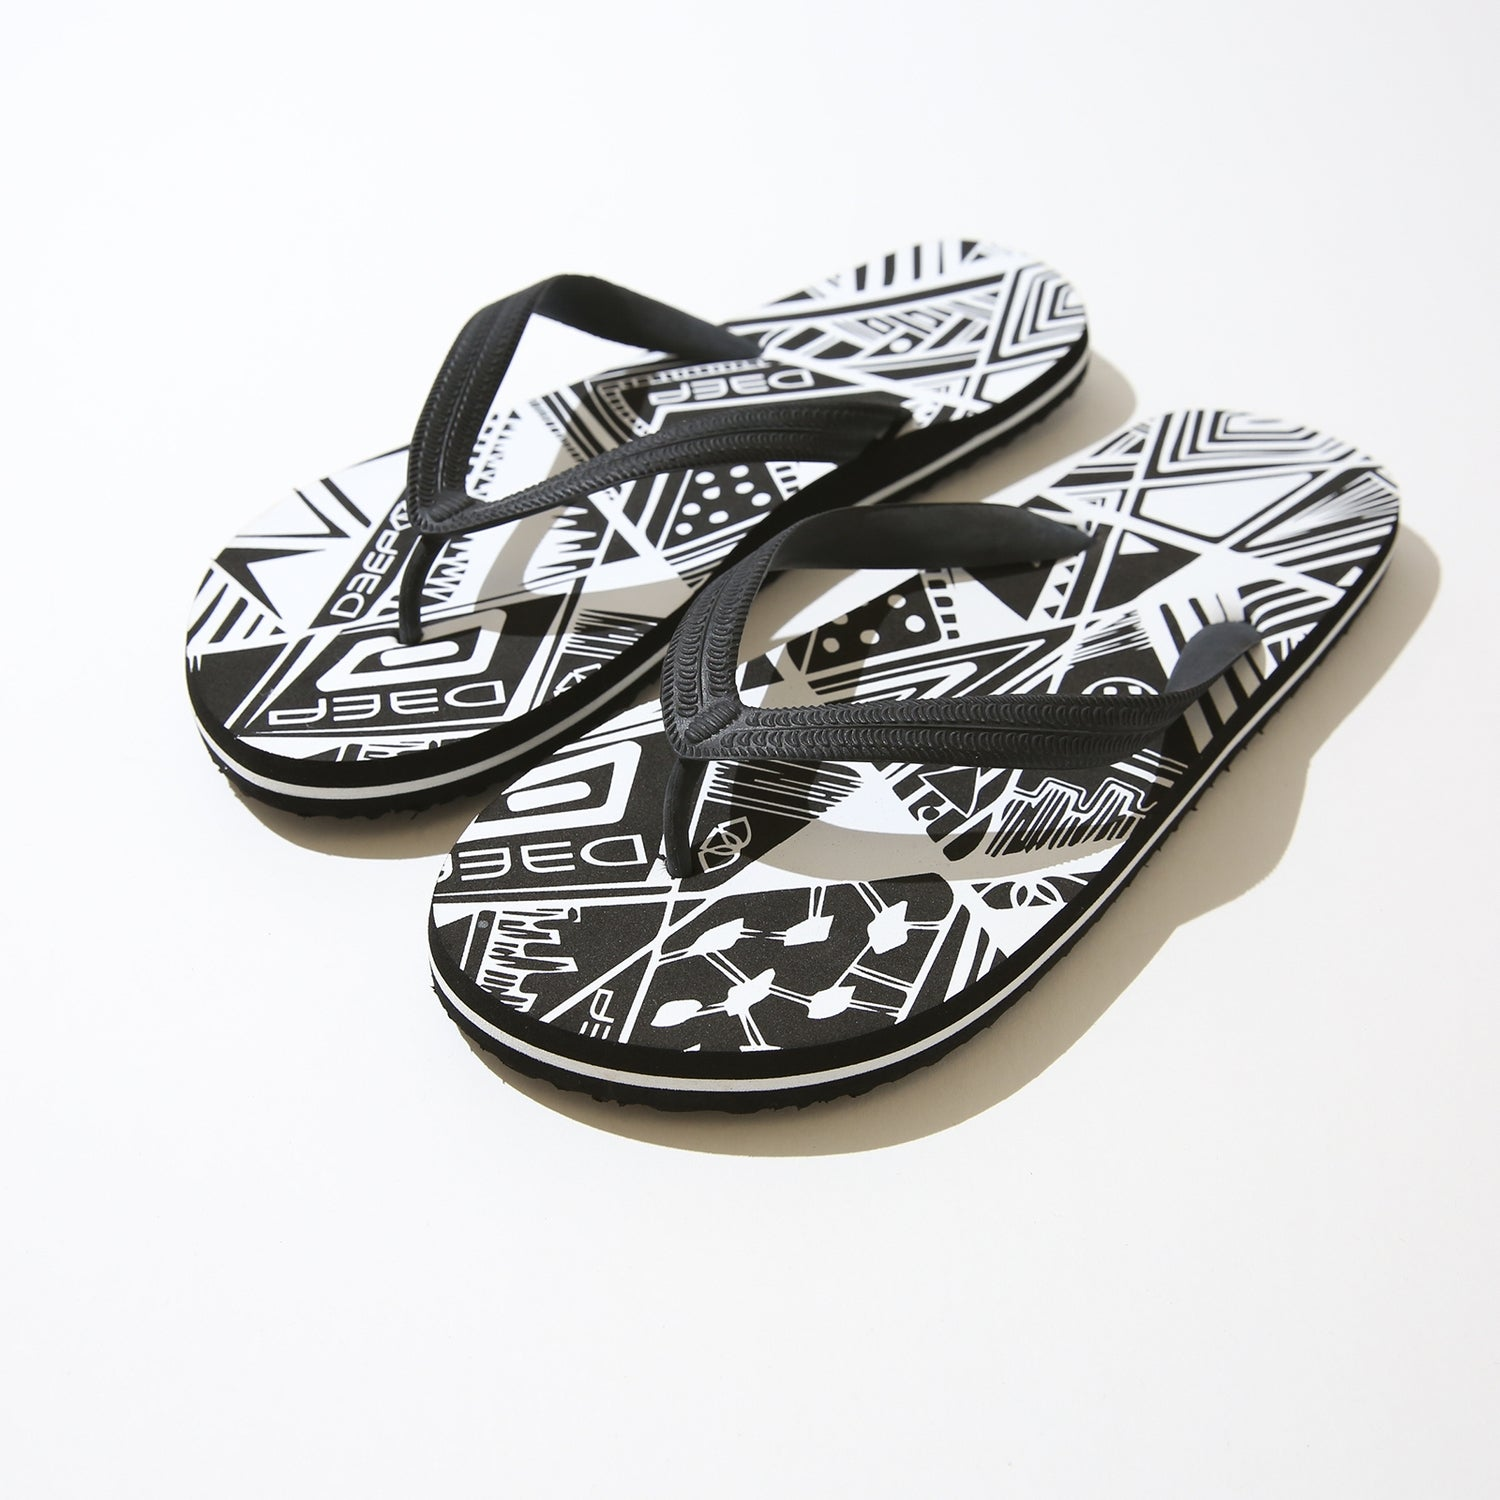 ce22642b4 Shop Deep Lifestyles White  Black Zebra Print Women Summer Sandals Comfort  Casual Thong Flat Slipper Flip Flops Flip-Flop Flipflops - Free Shipping On  ...